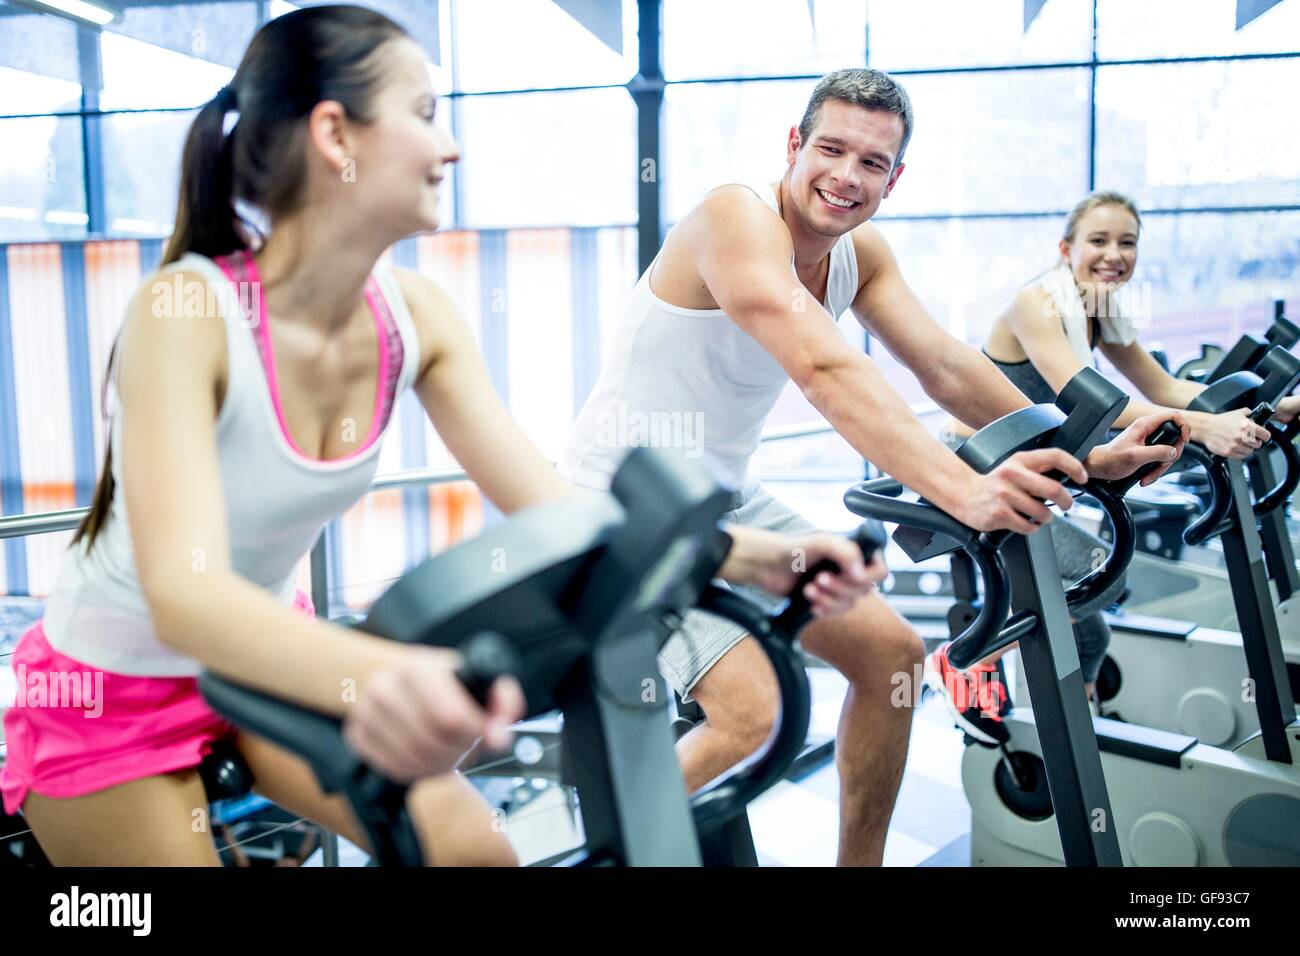 PROPERTY RELEASED. MODEL RELEASED. Young men and women working out on exercise machines in gym, smiling. - Stock Image